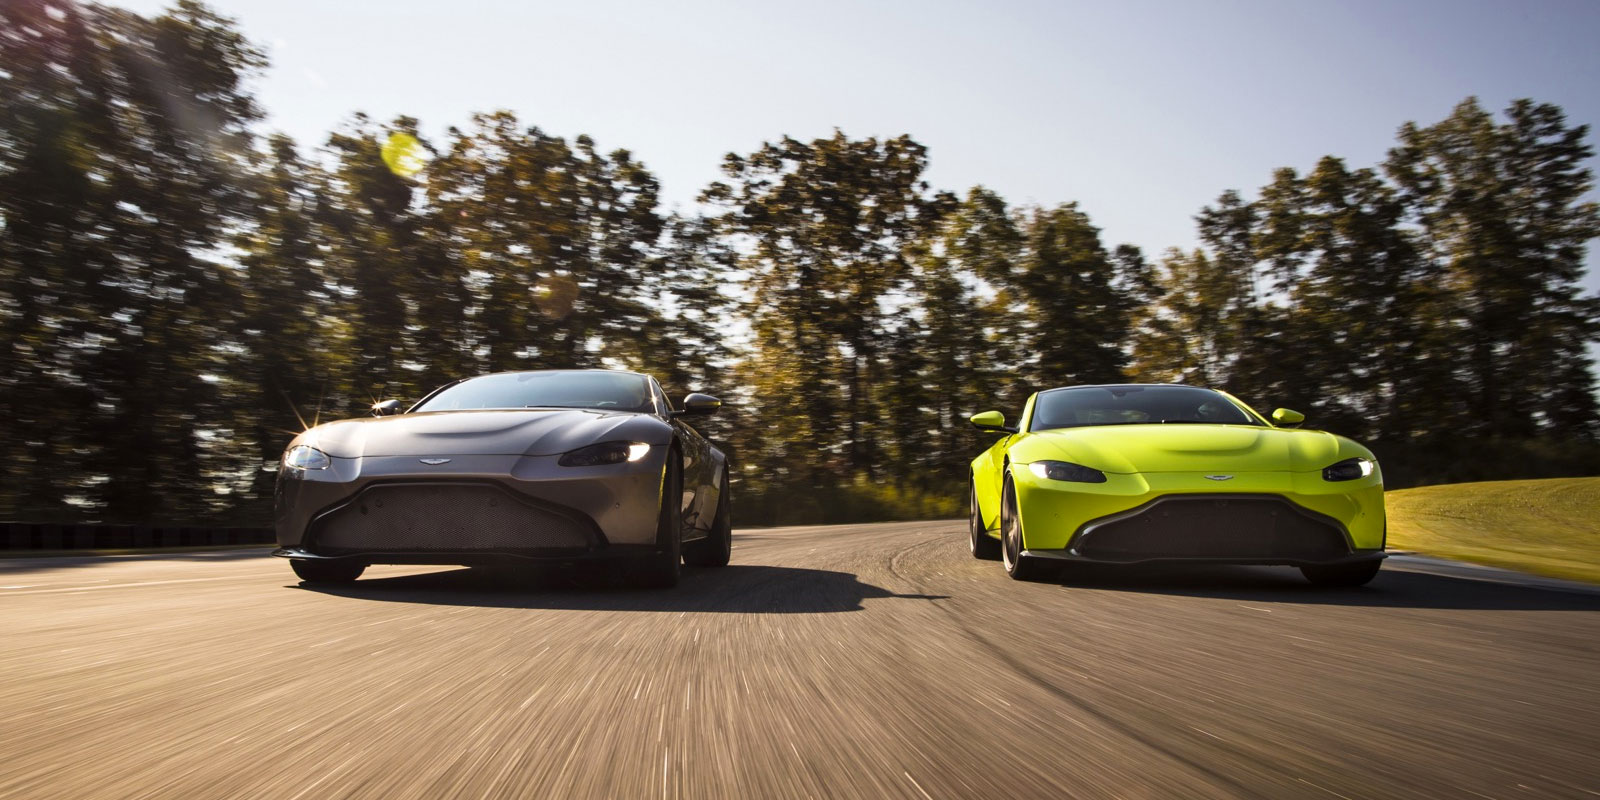 Aston Martin New Vantage - The Archetypal Hunter image 15